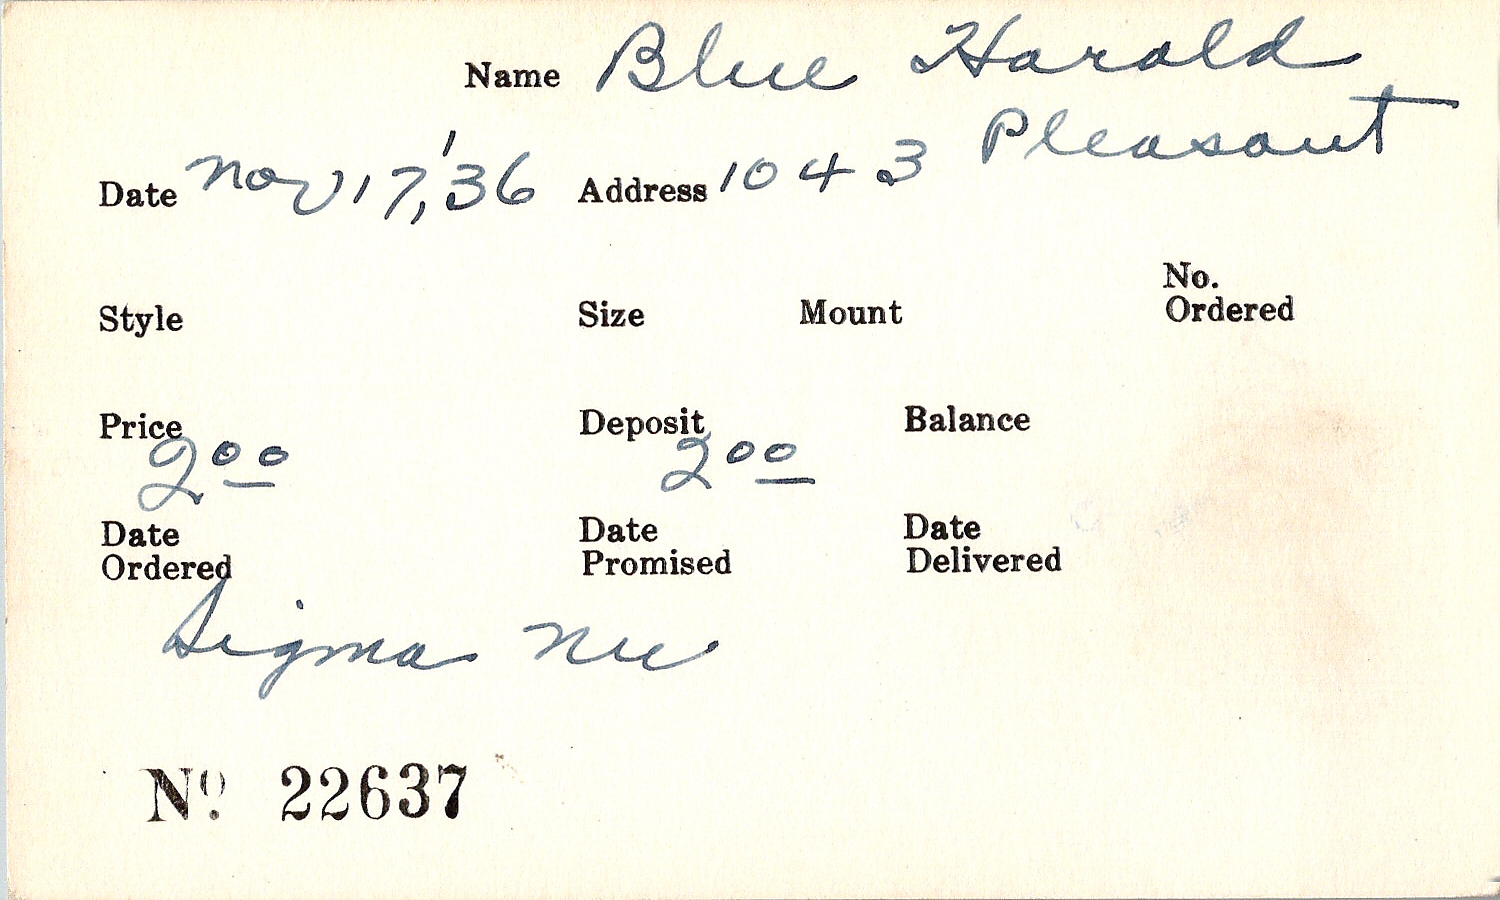 Index card for Harold Blue